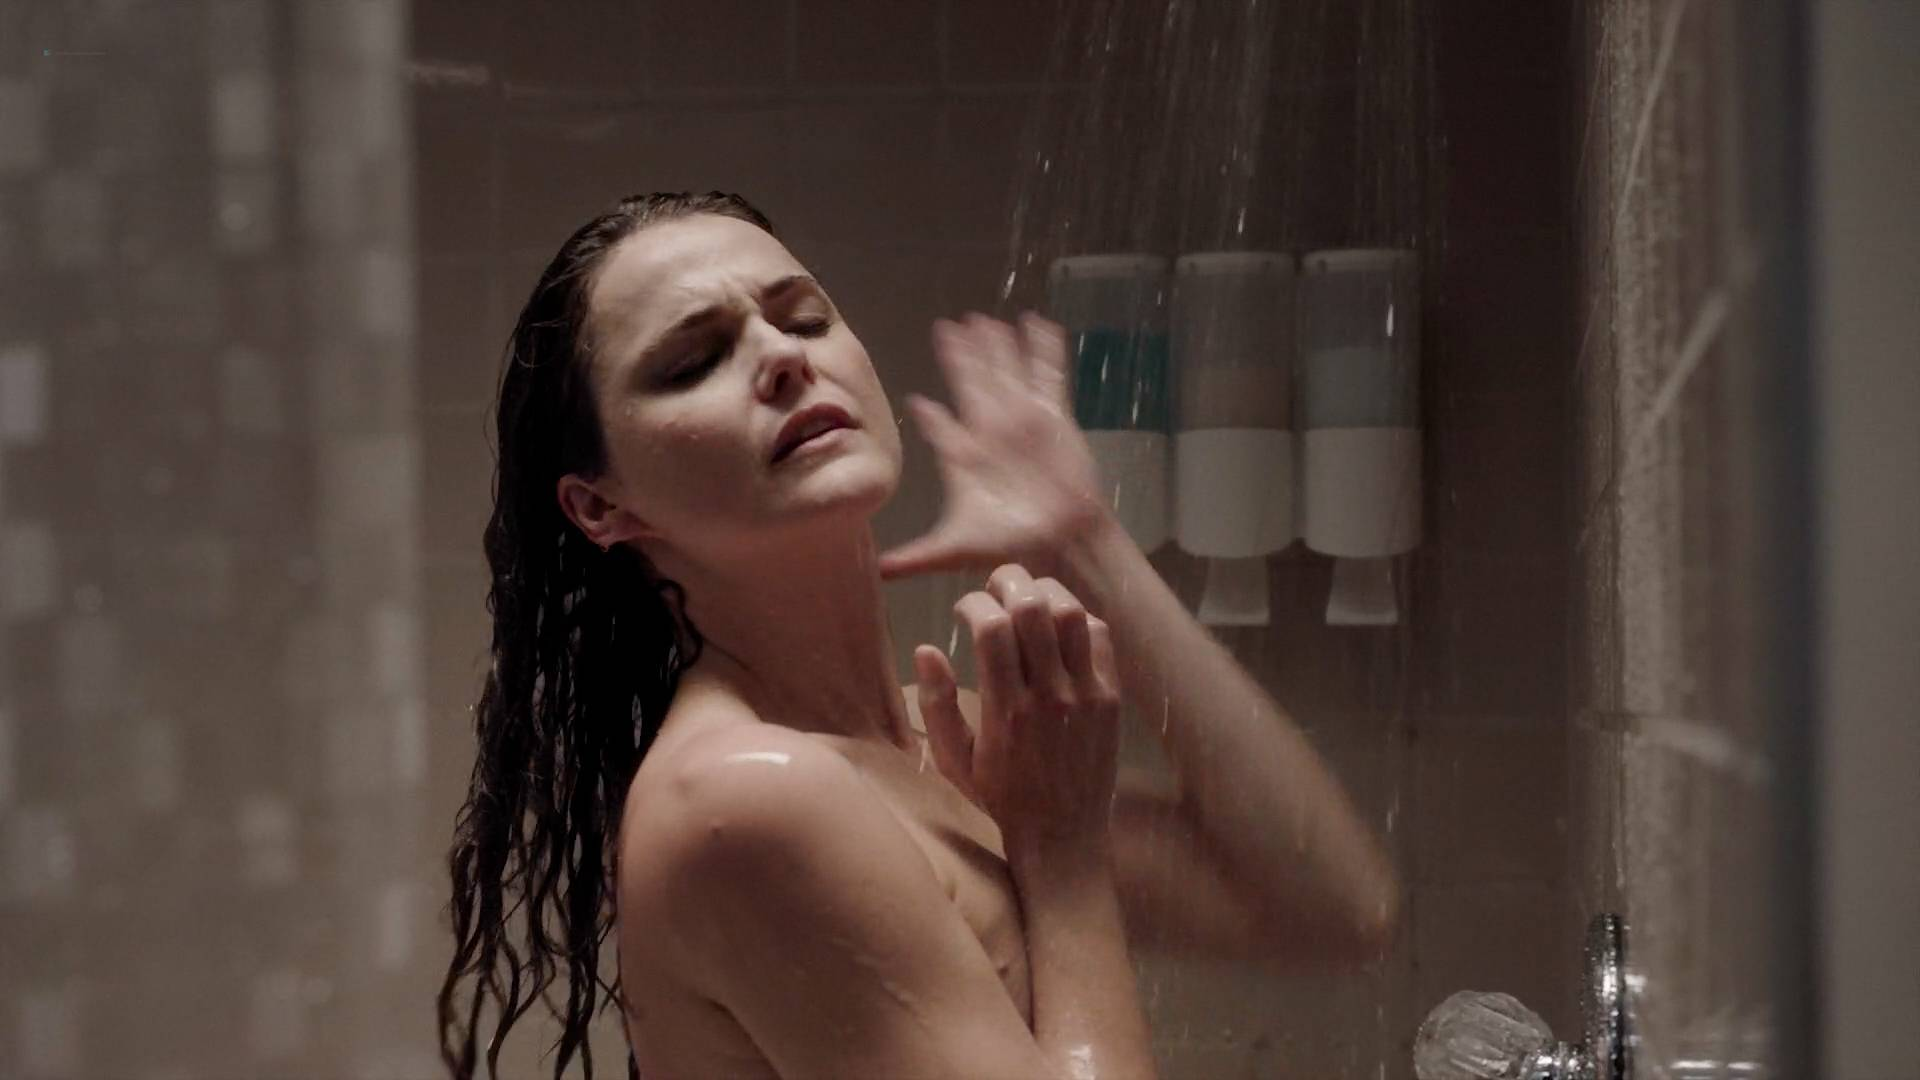 Keri-Russell-nude-butt-in-the-shower-The-Americans-2017-s5e2-HD720-1080p-00008.jpg